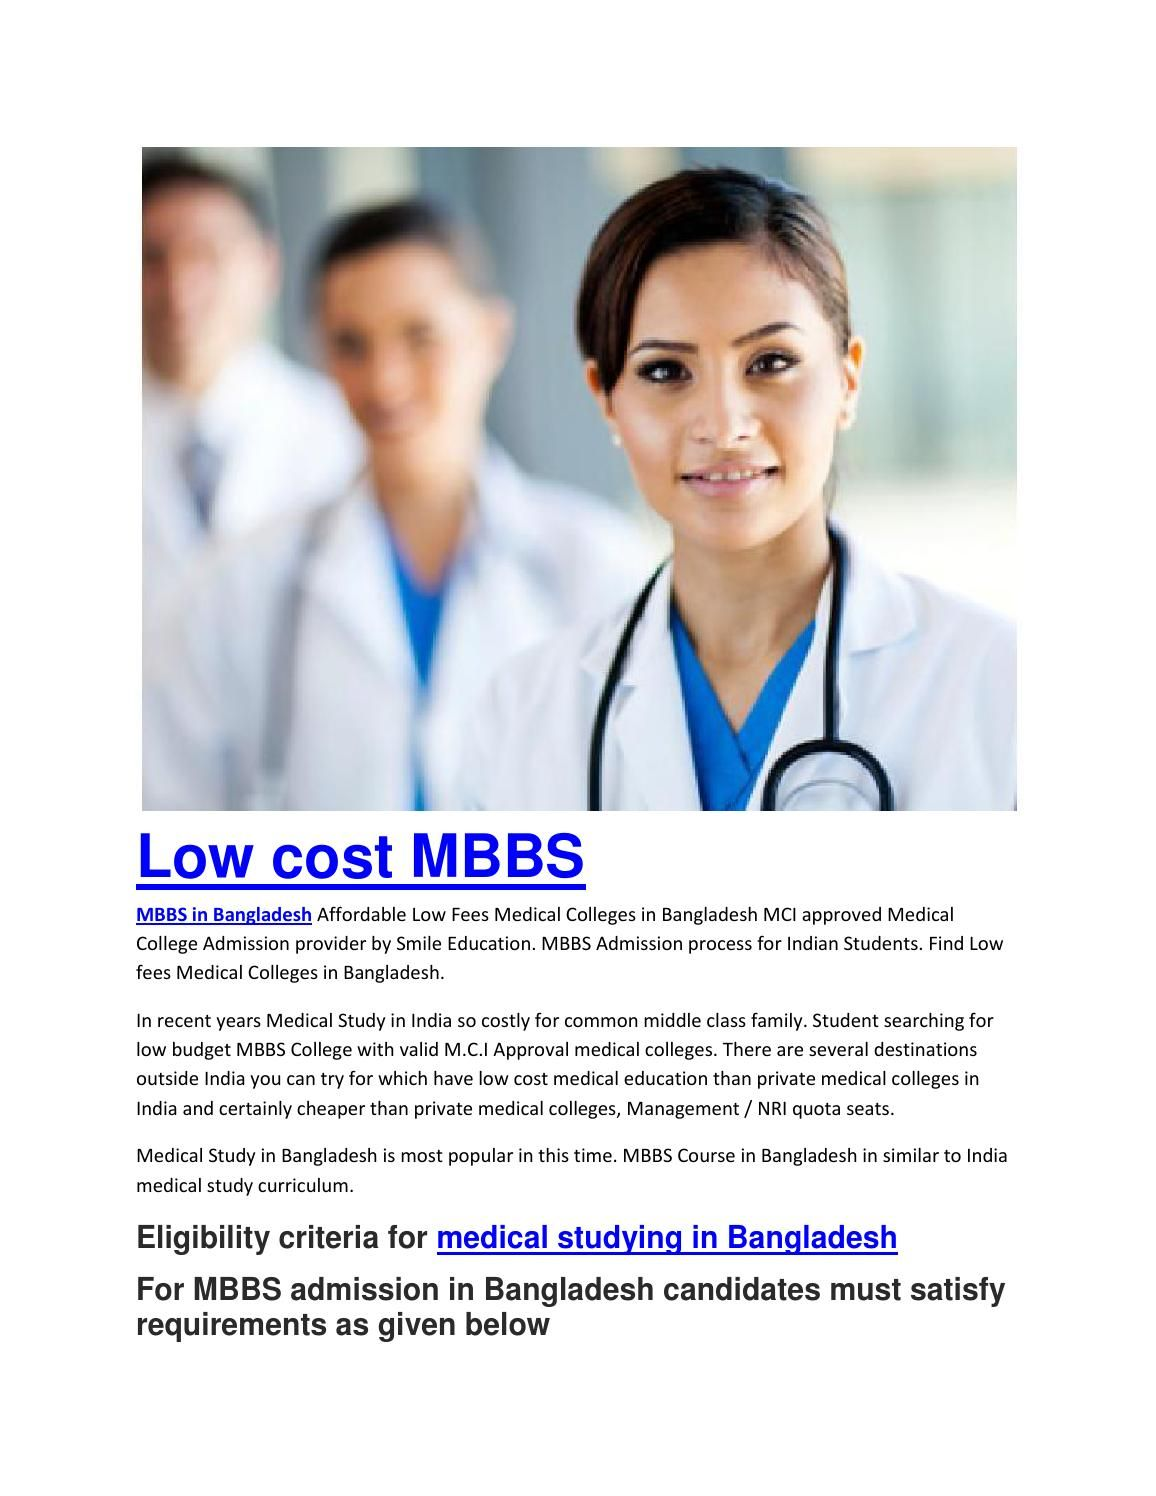 Low cost MBBS for Indian candidates | MBBS | Medical college